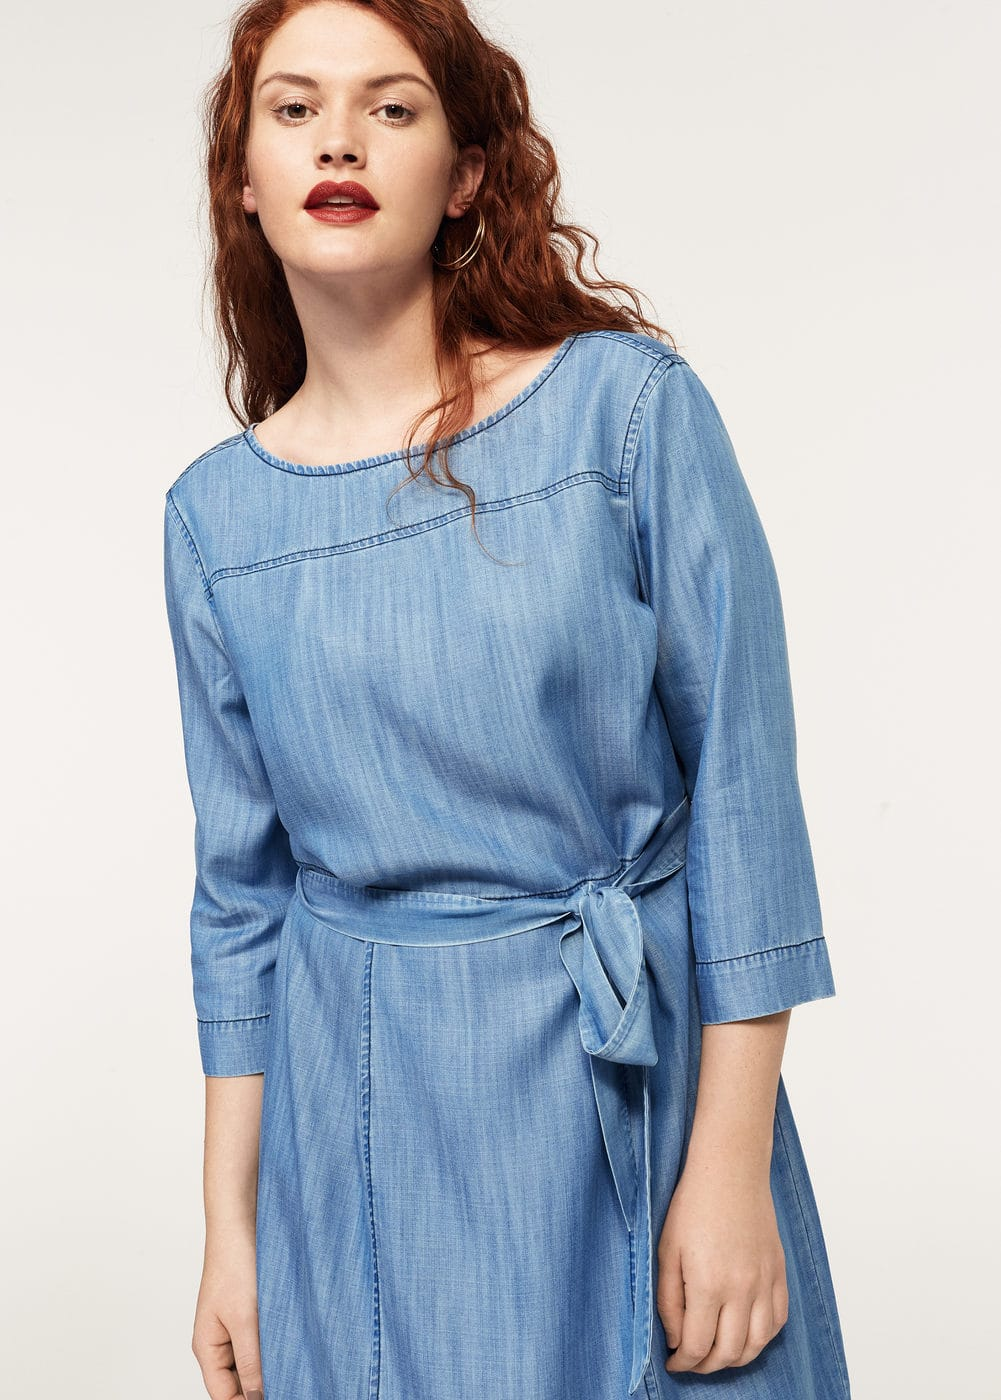 Medium denim dress | VIOLETA BY MANGO